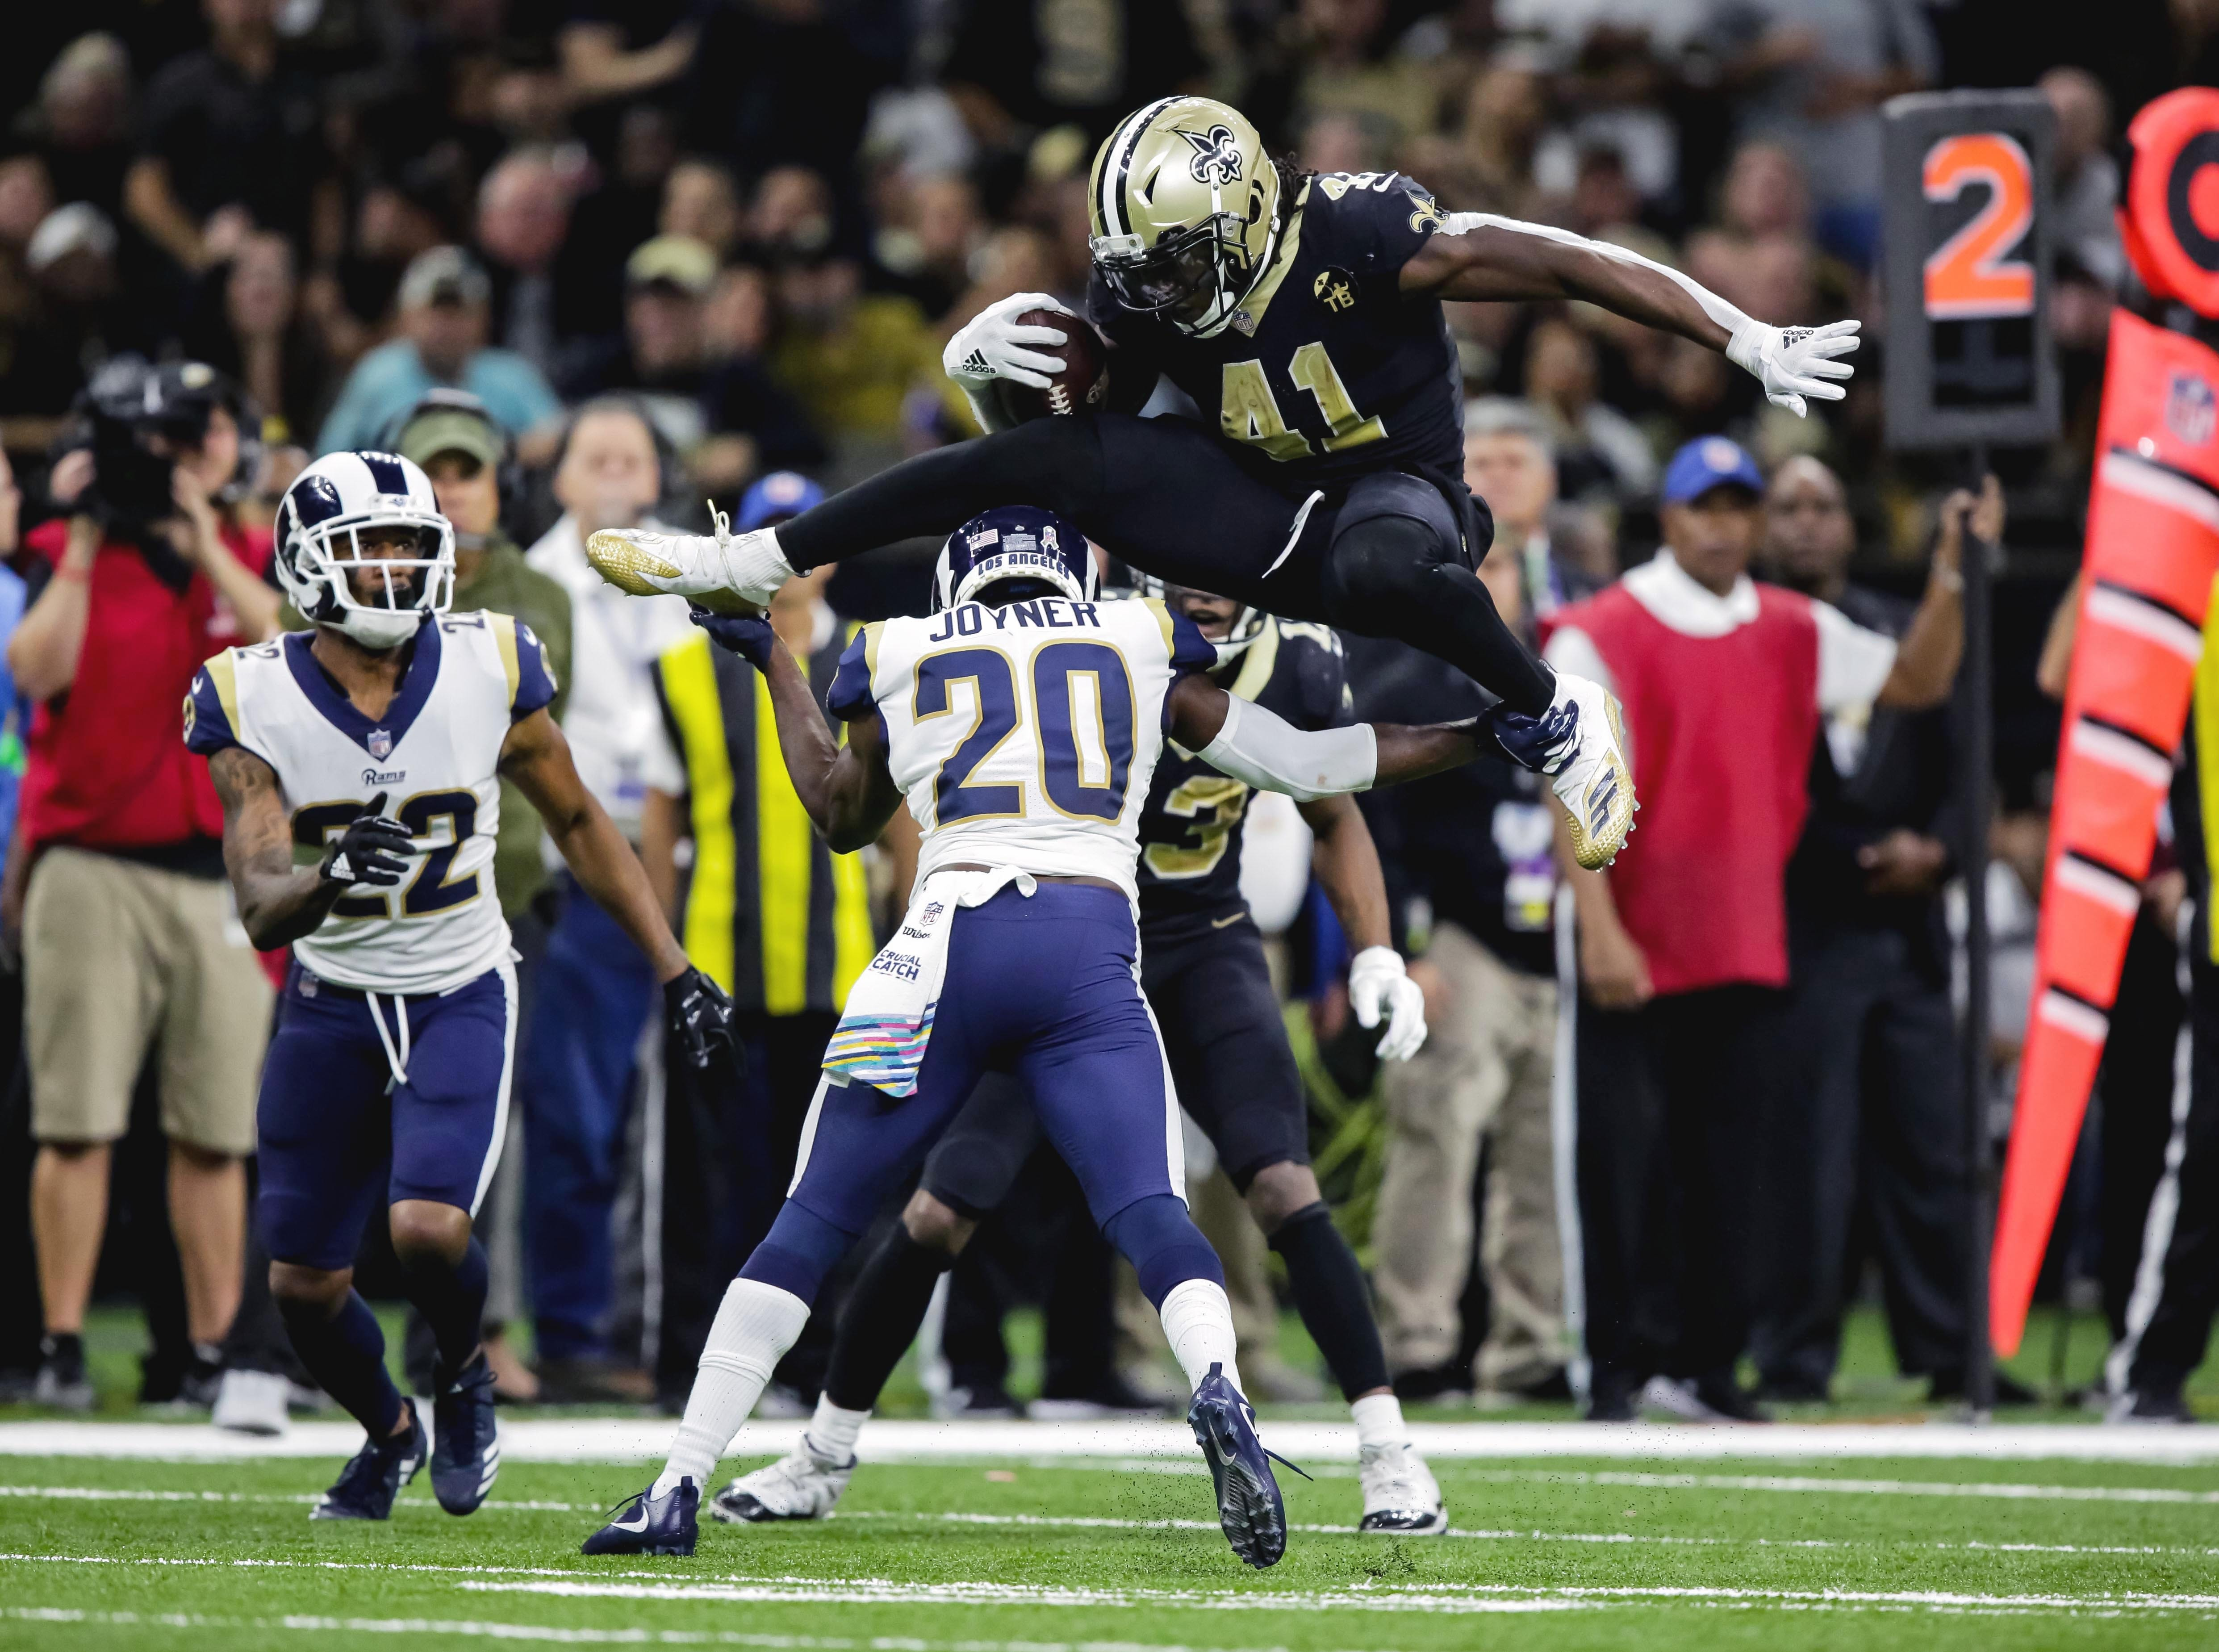 Nov 4, 2018; New Orleans, LA, USA; New Orleans Saints running back Alvin Kamara (41) hurdles over Los Angeles Rams free safety Lamarcus Joyner (20) during the fourth quarter at the Mercedes-Benz Superdome. Mandatory Credit: Derick E. Hingle-USA TODAY Sports